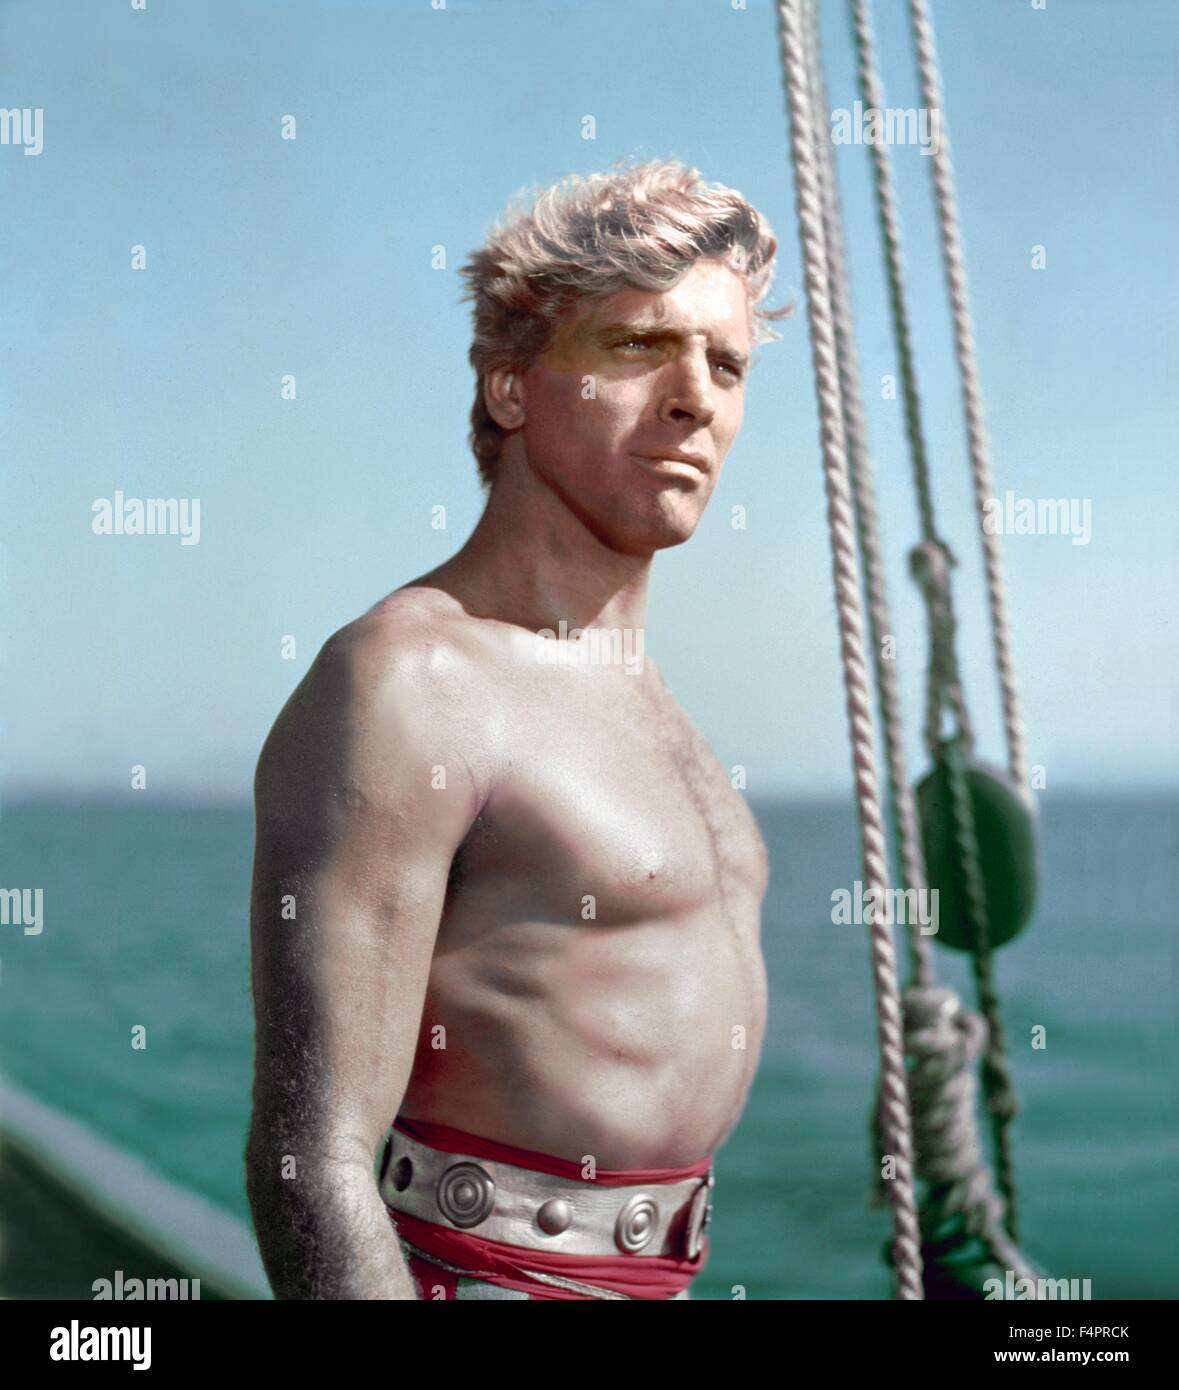 Burt Lancaster / The Crimson Pirate / 1952 directed by Robert Siodmak [Warner Bros. Pictures] - Stock Image